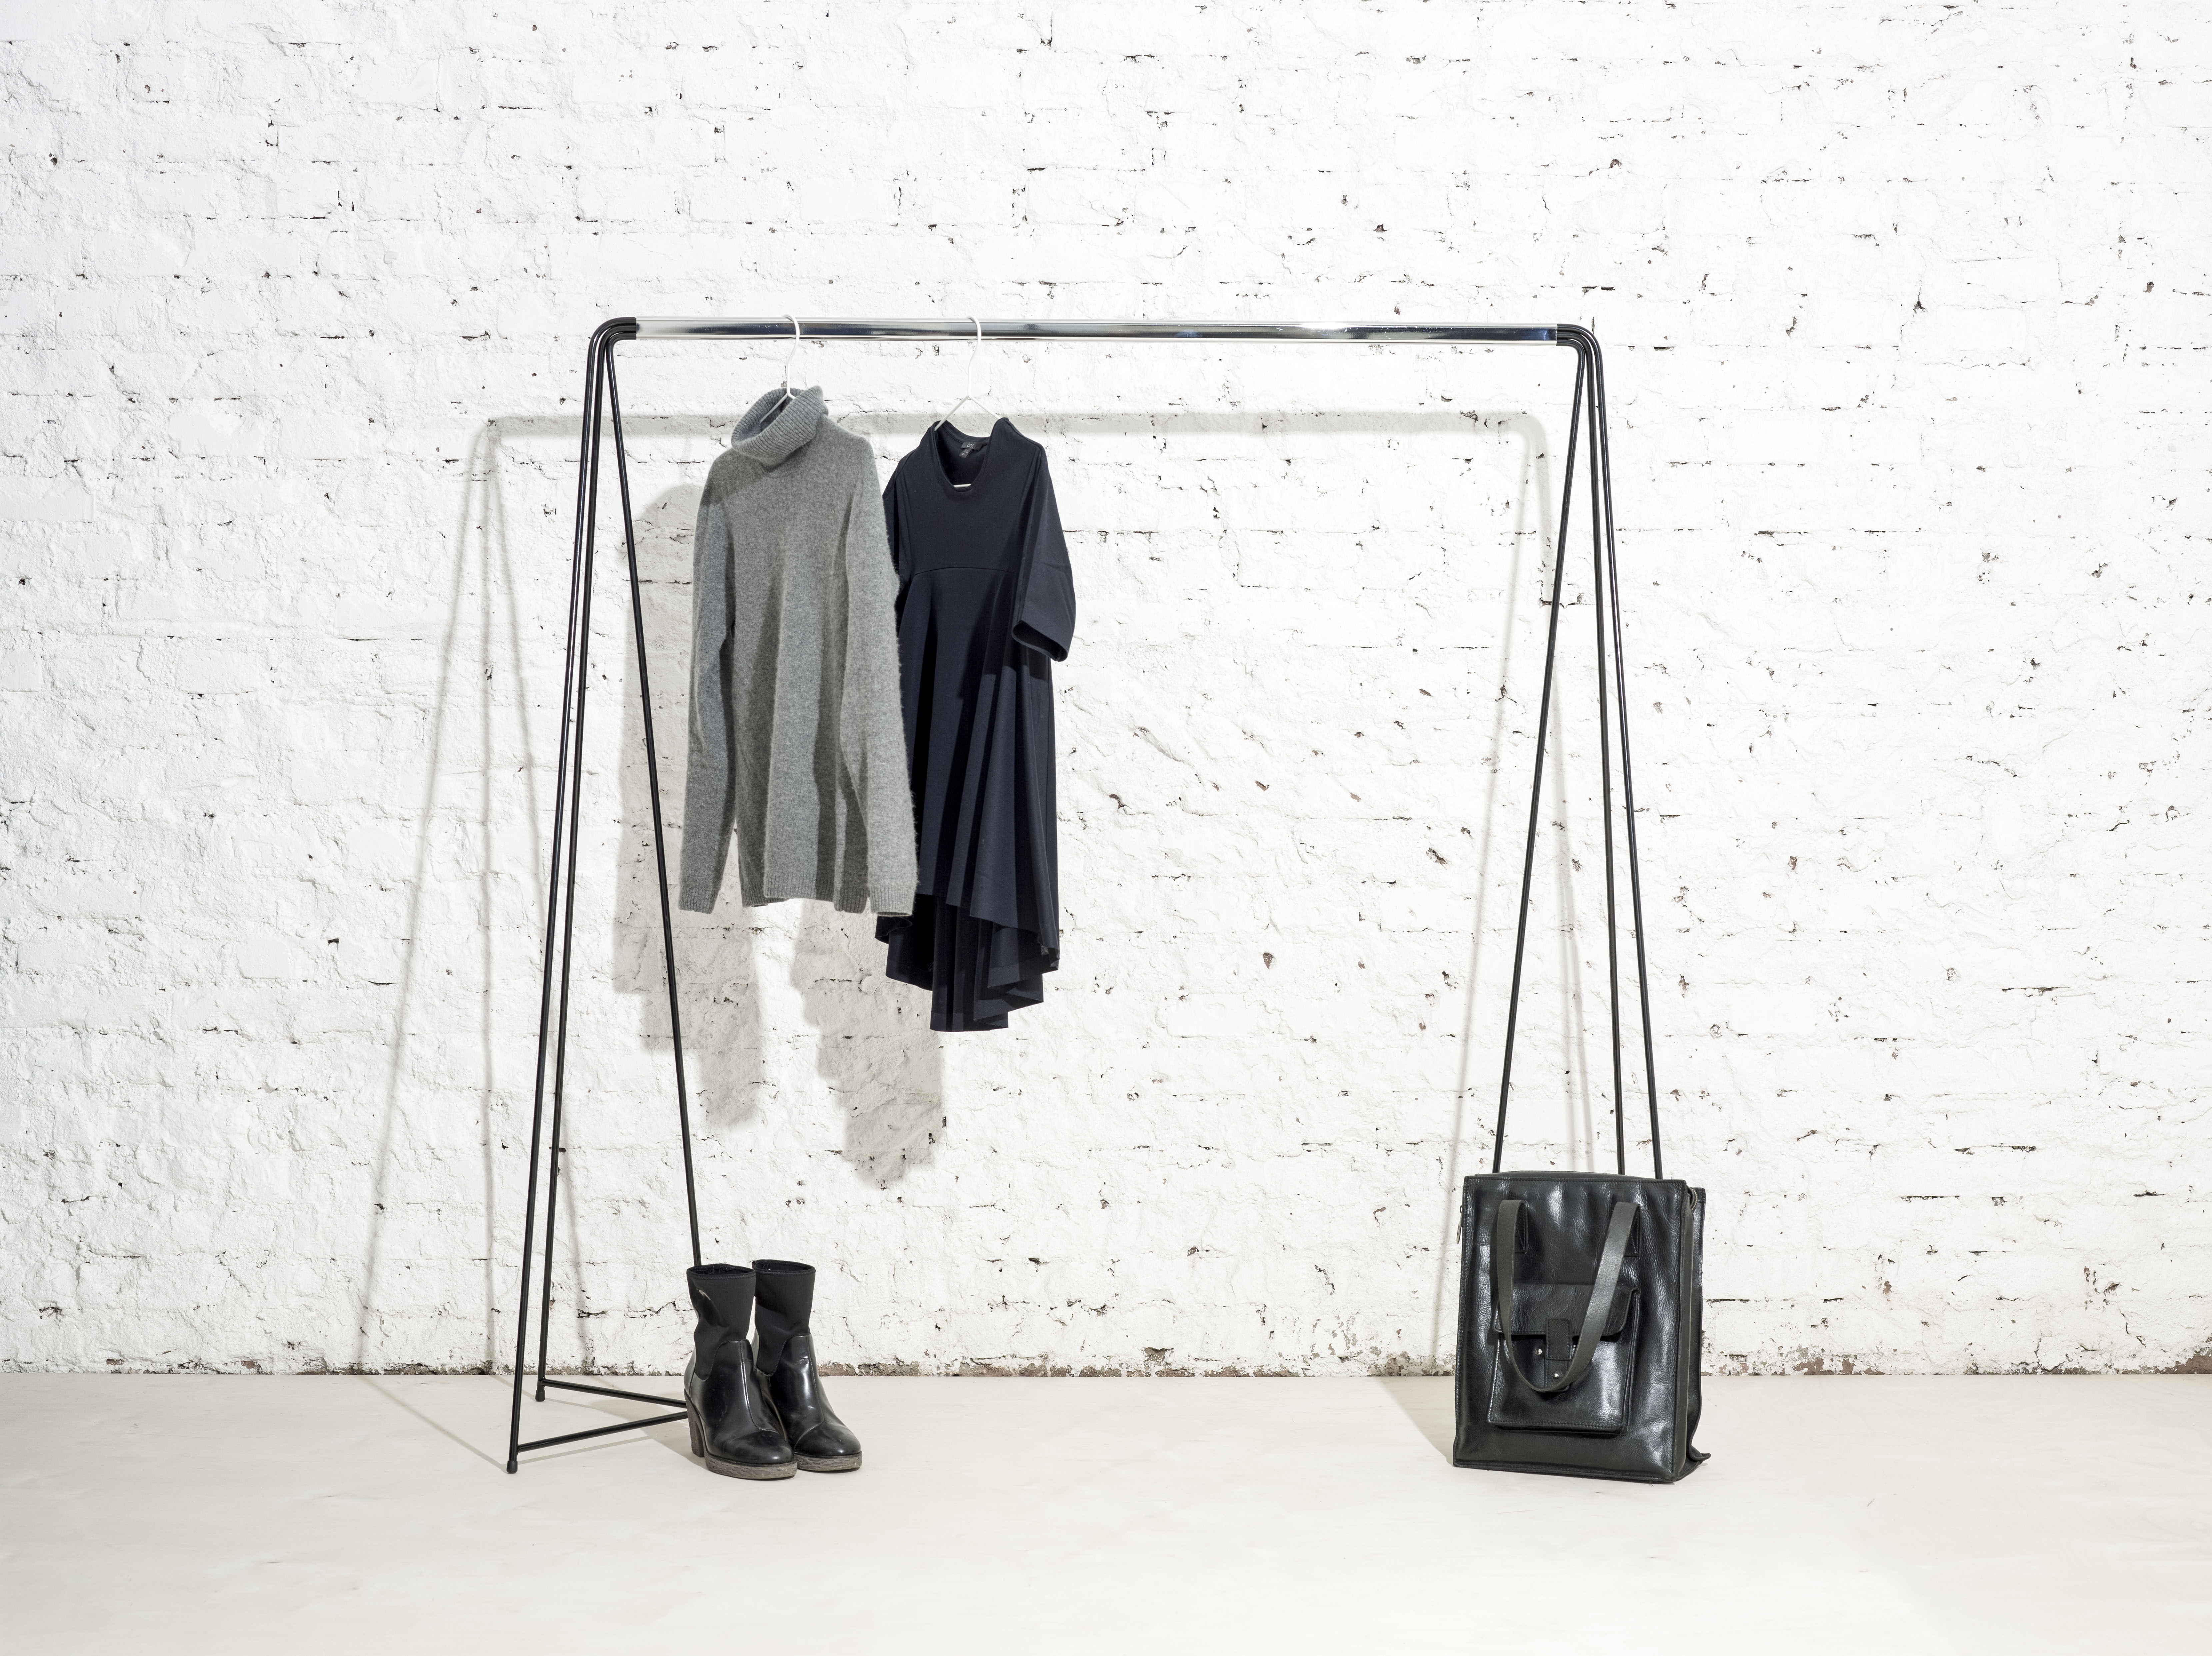 Stander clothes rack by Michal Malášek for Master & Master (photo courtesy Master & Master)